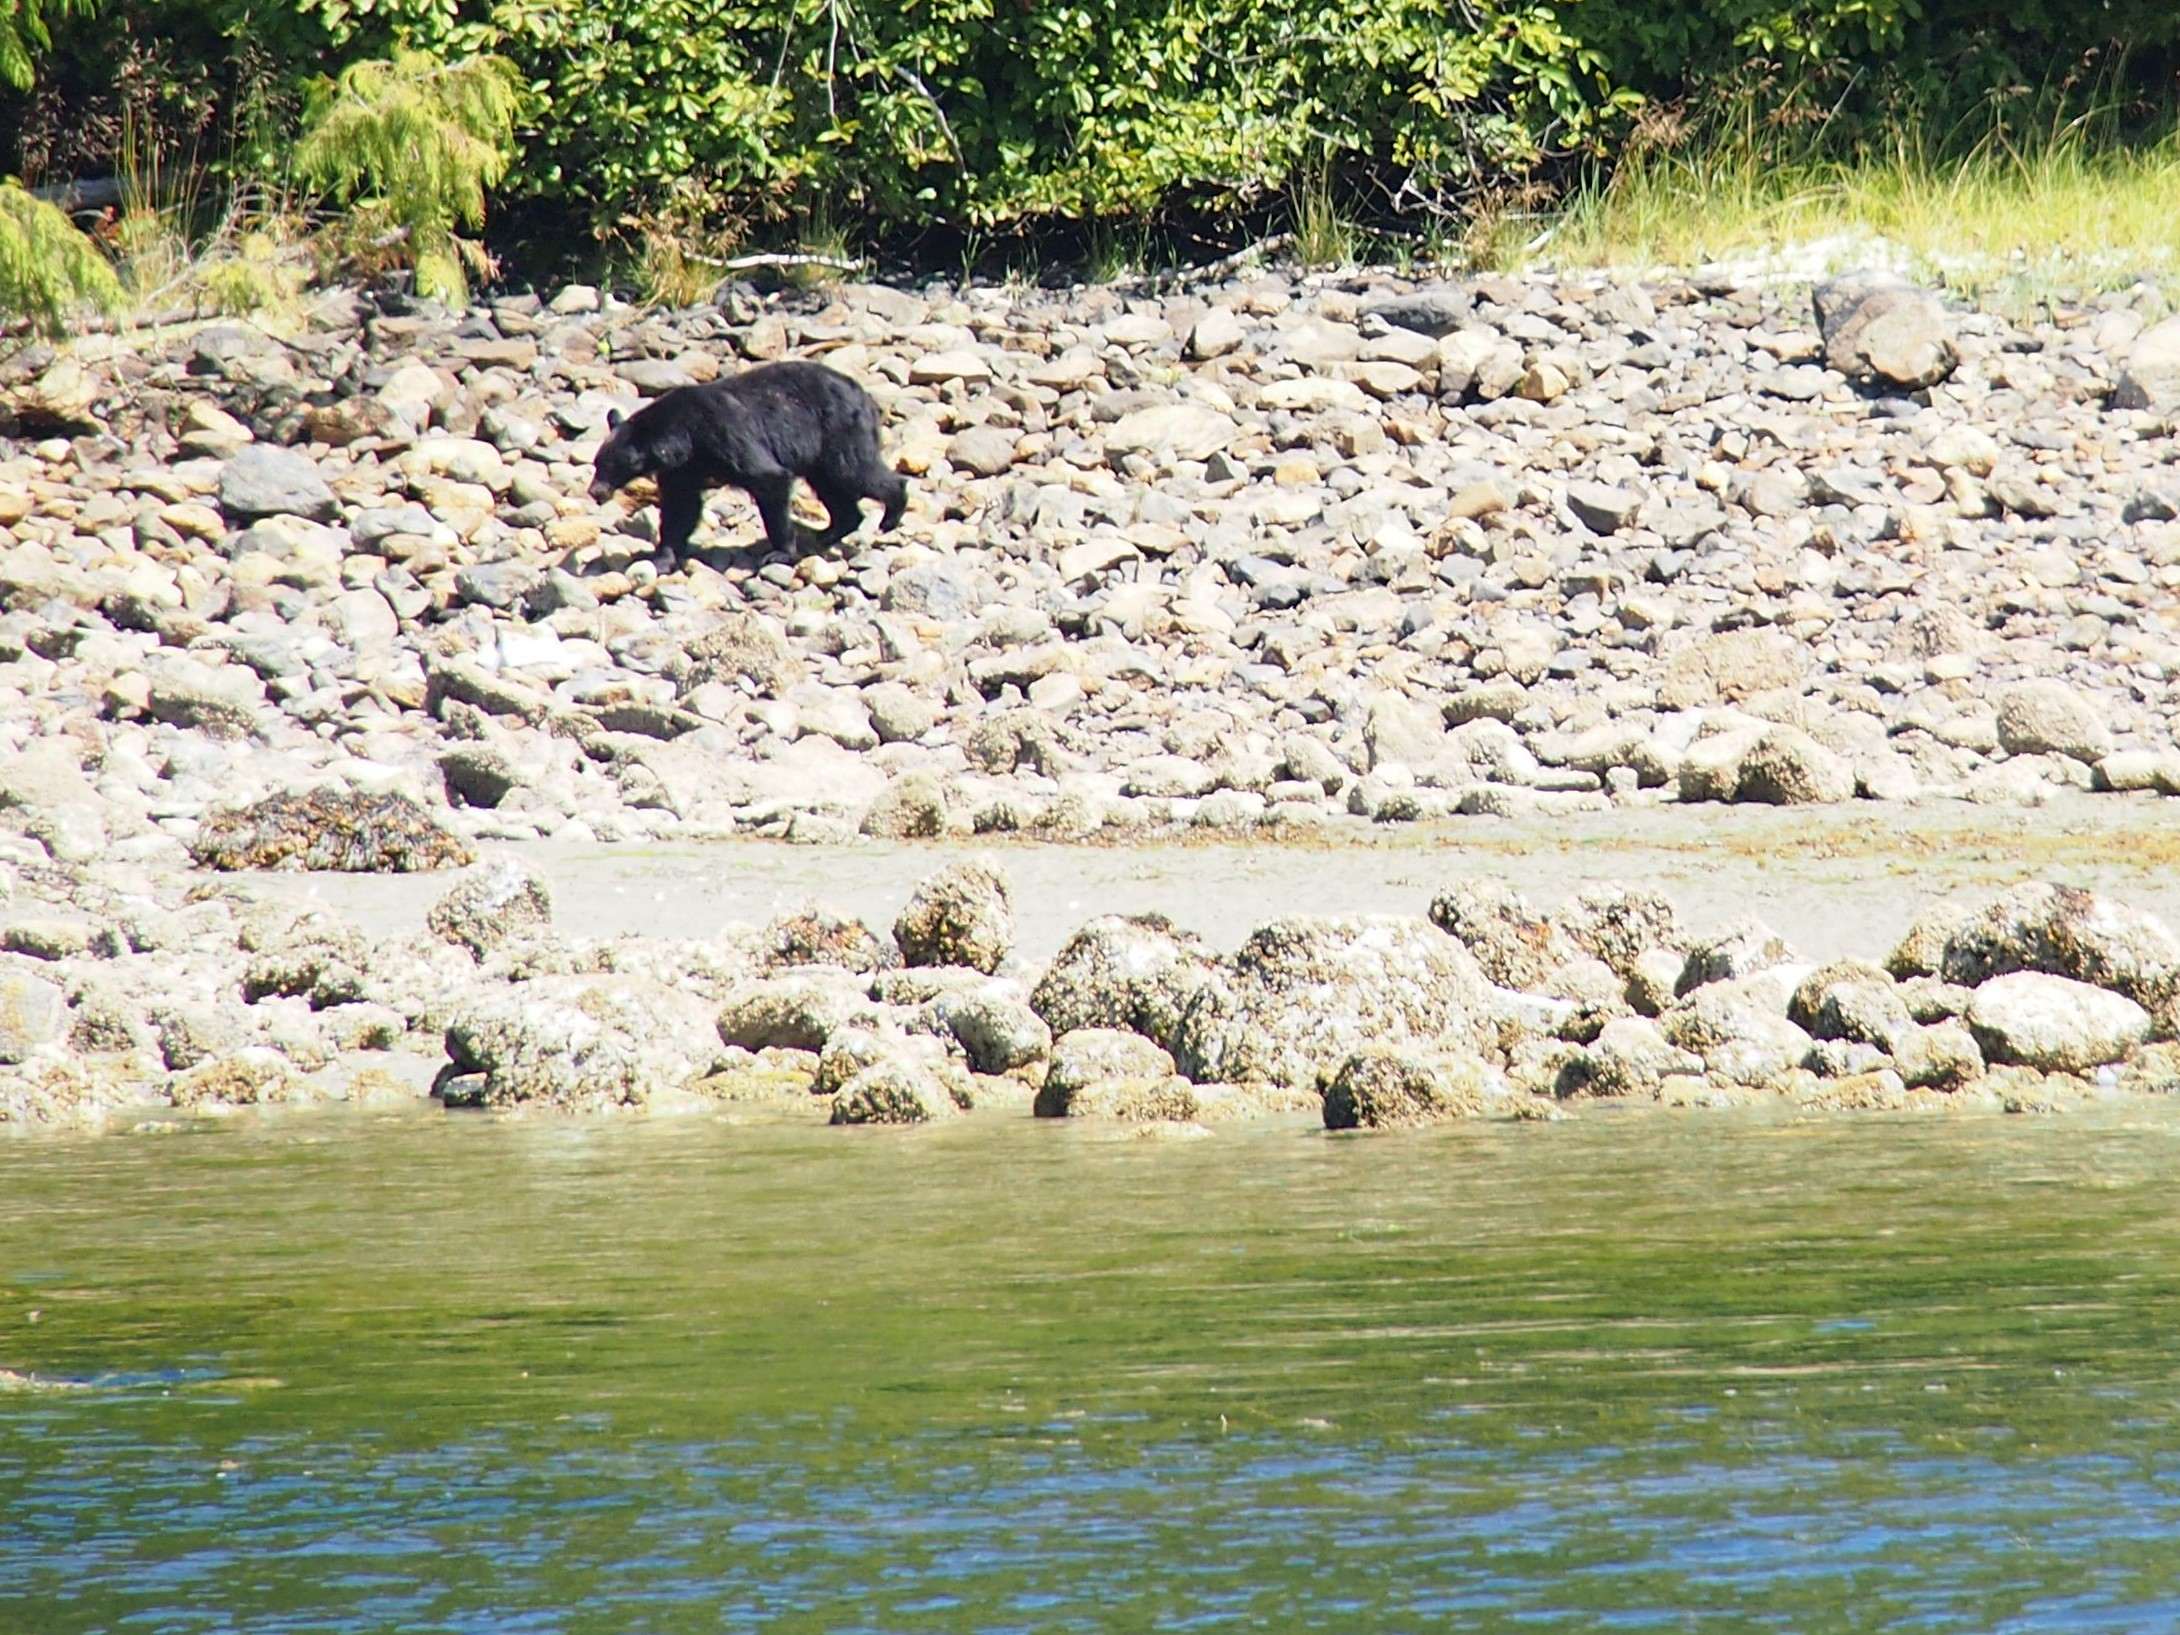 Black bear retreating to the woods after a filling its tummy with yummy crab. We saw this bear and 2 others during our boat tour in Browning Passage.